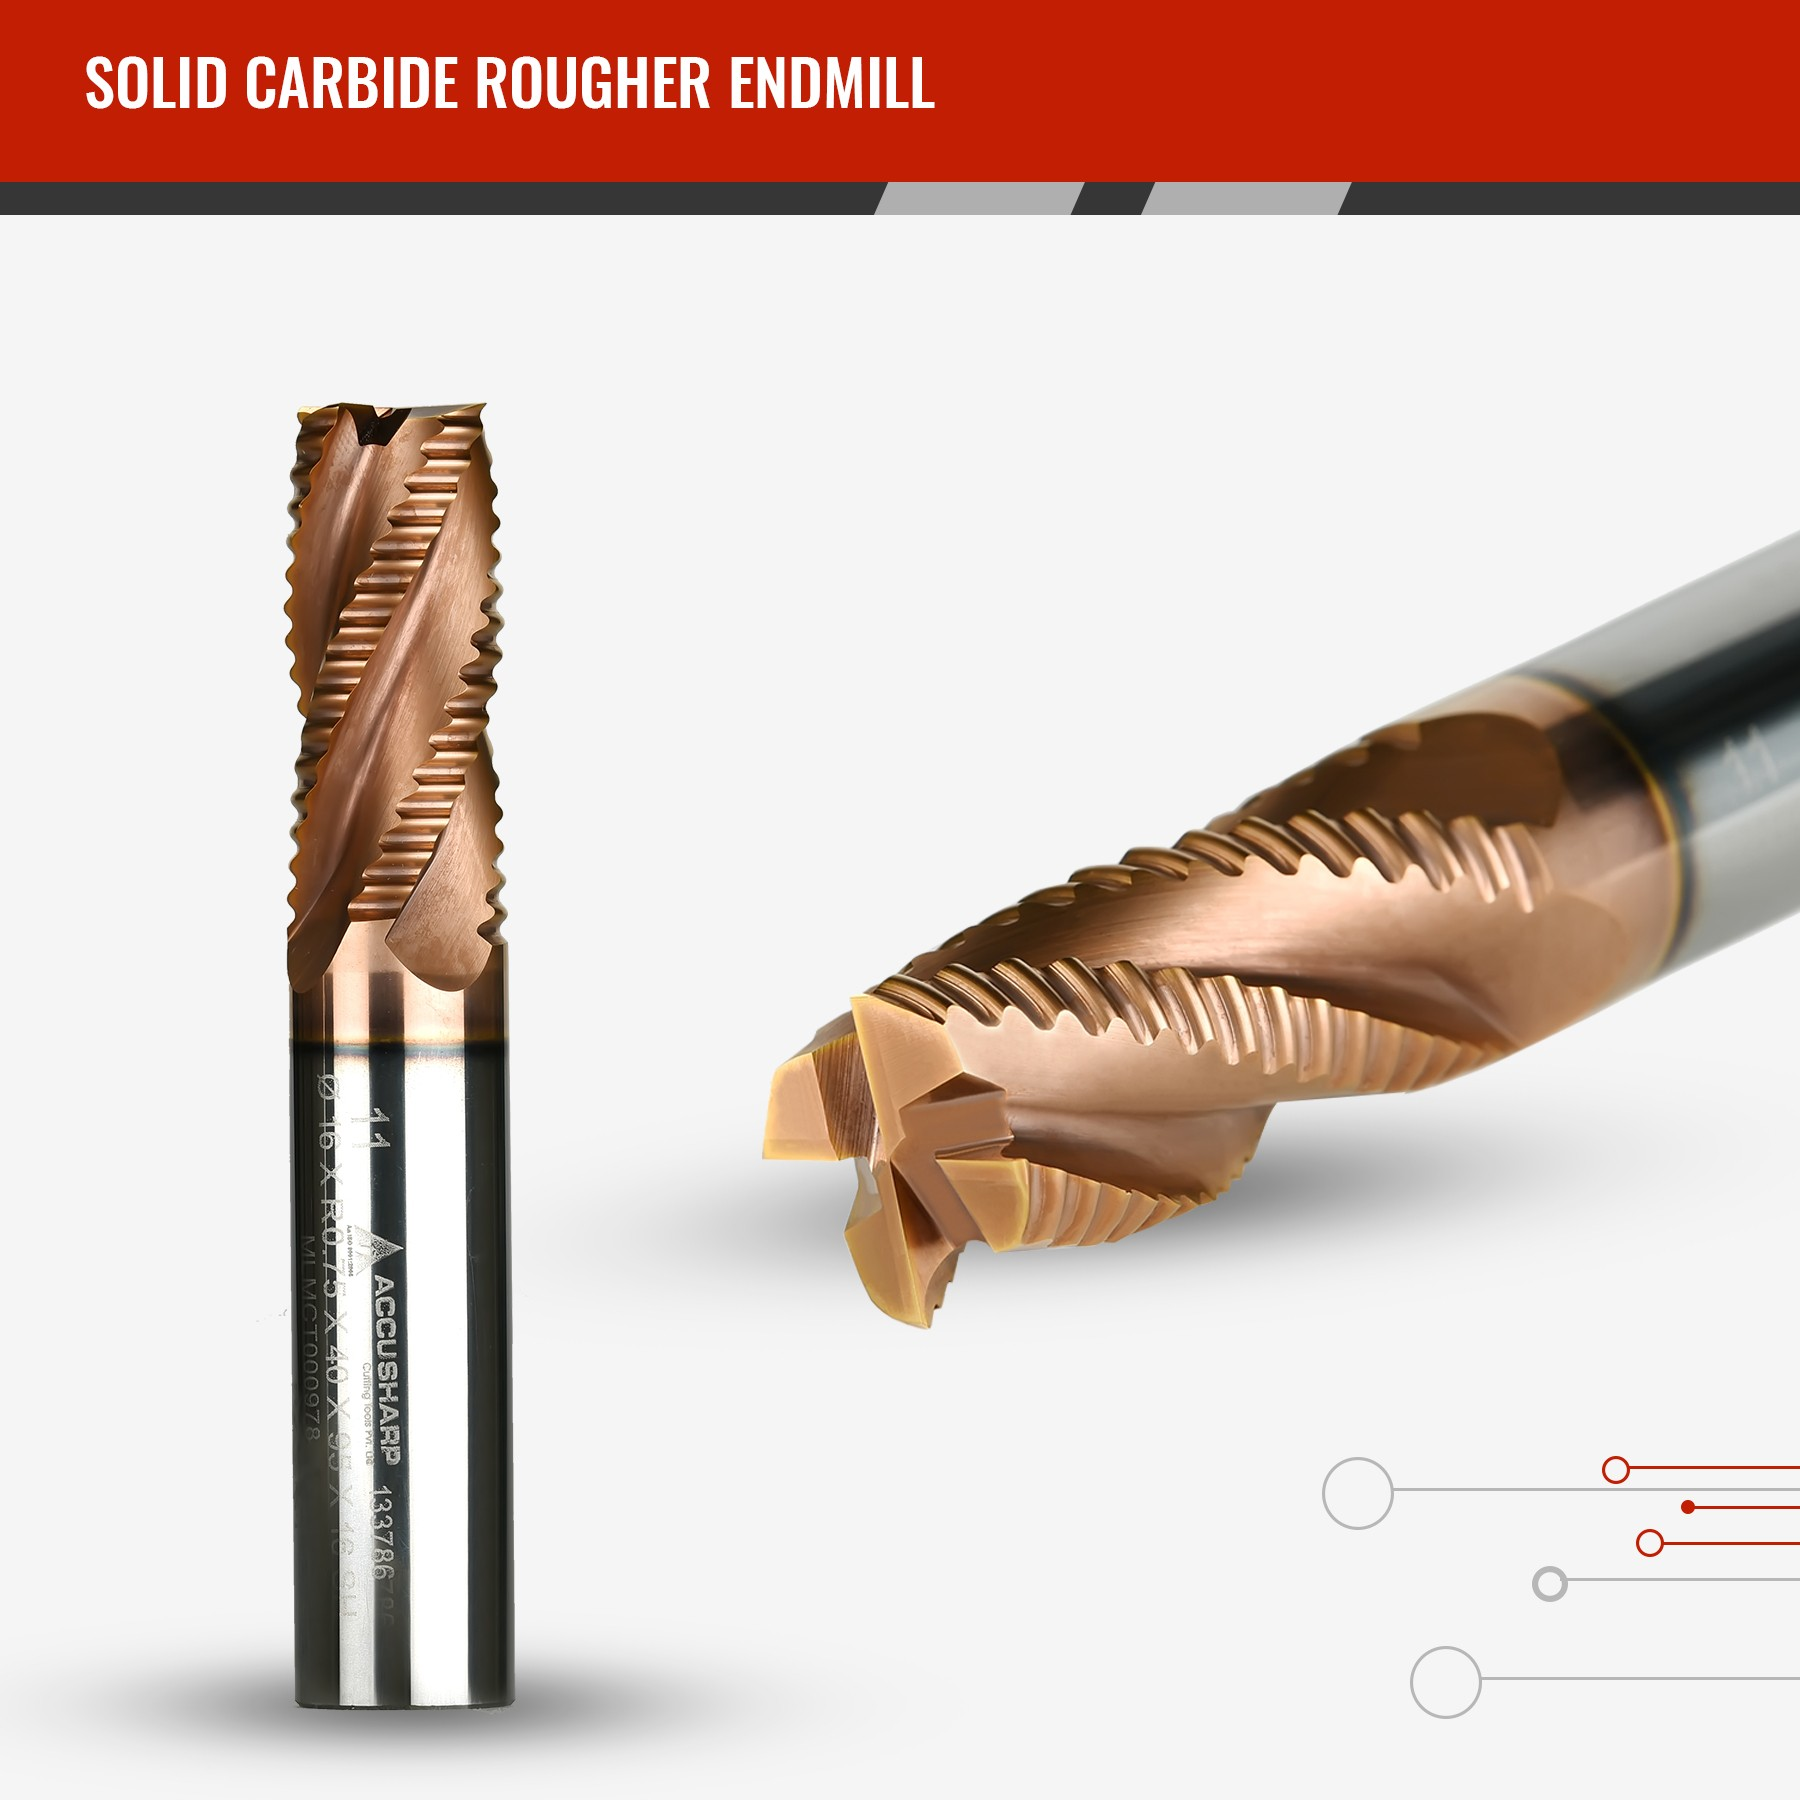 Solid Carbide Rougher Endmill